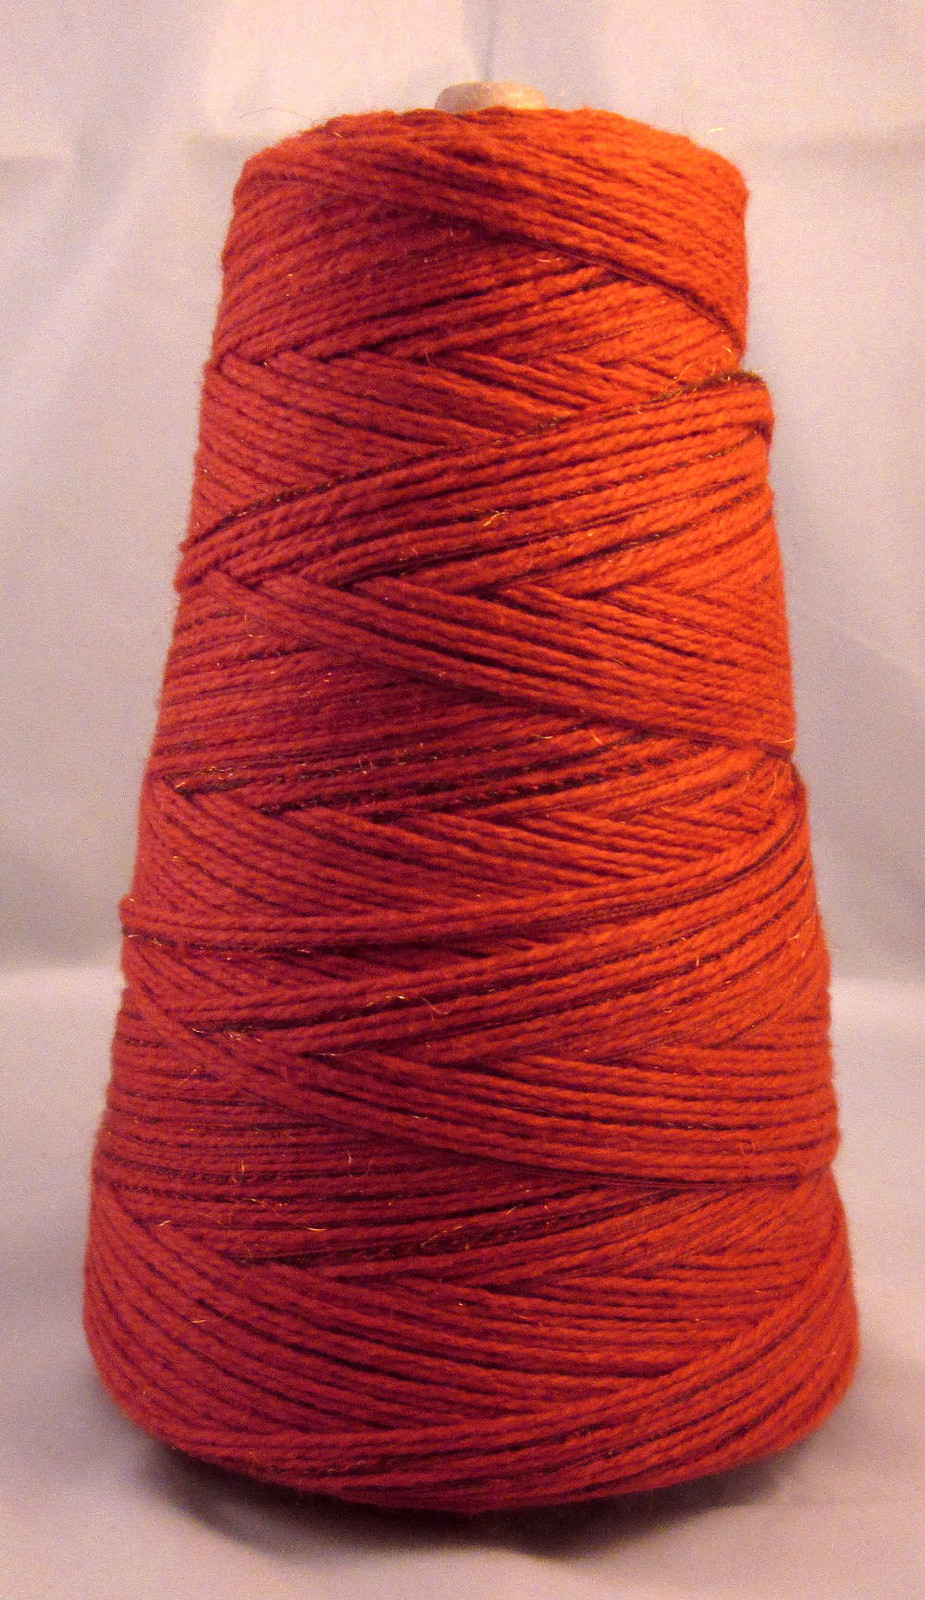 5 Weight Yarn New Featured Yarn Vulcan Of Charming 47 Images 5 Weight Yarn